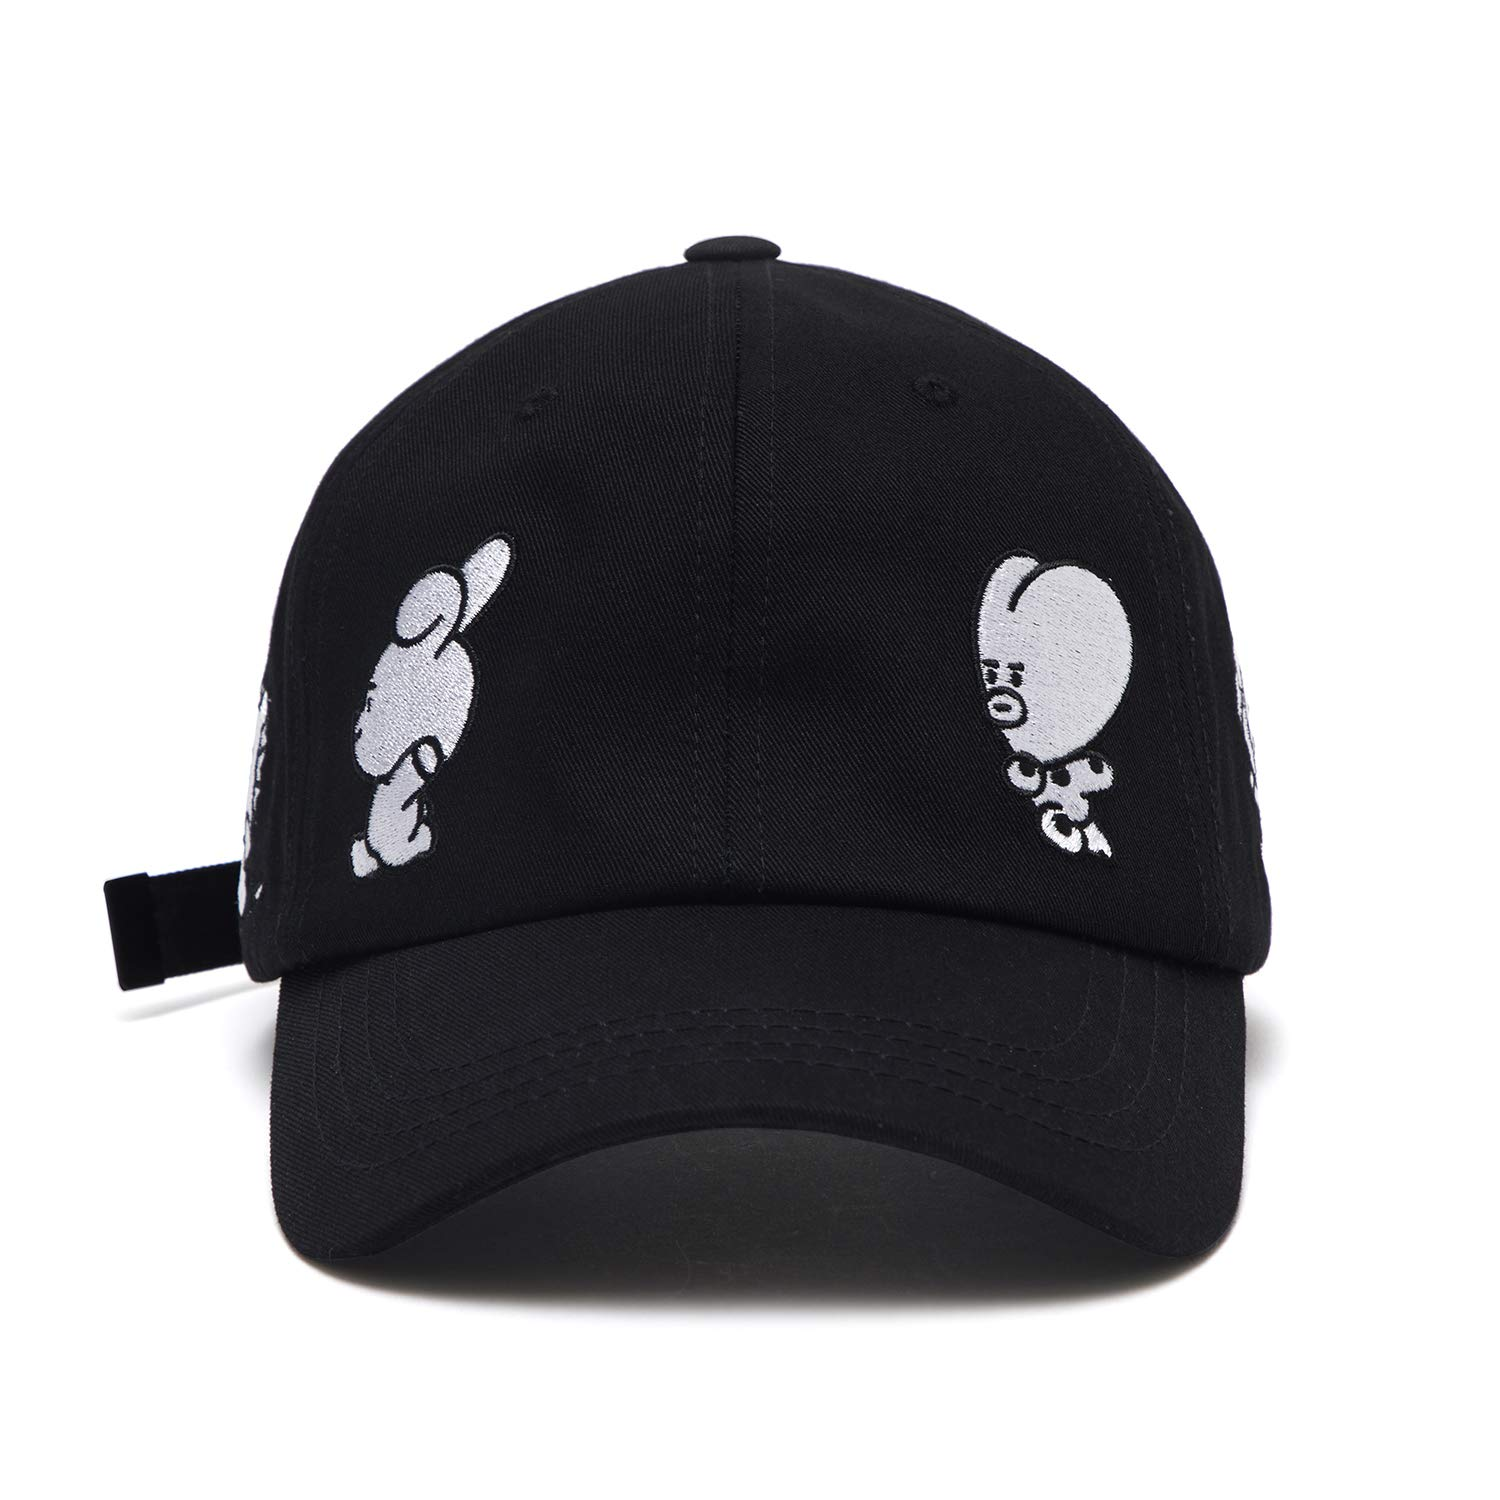 4c336299174 BT21 Official Merchandise by Line Friends - Black Baseball Cap Hats for Men  and Women at Amazon Men s Clothing store